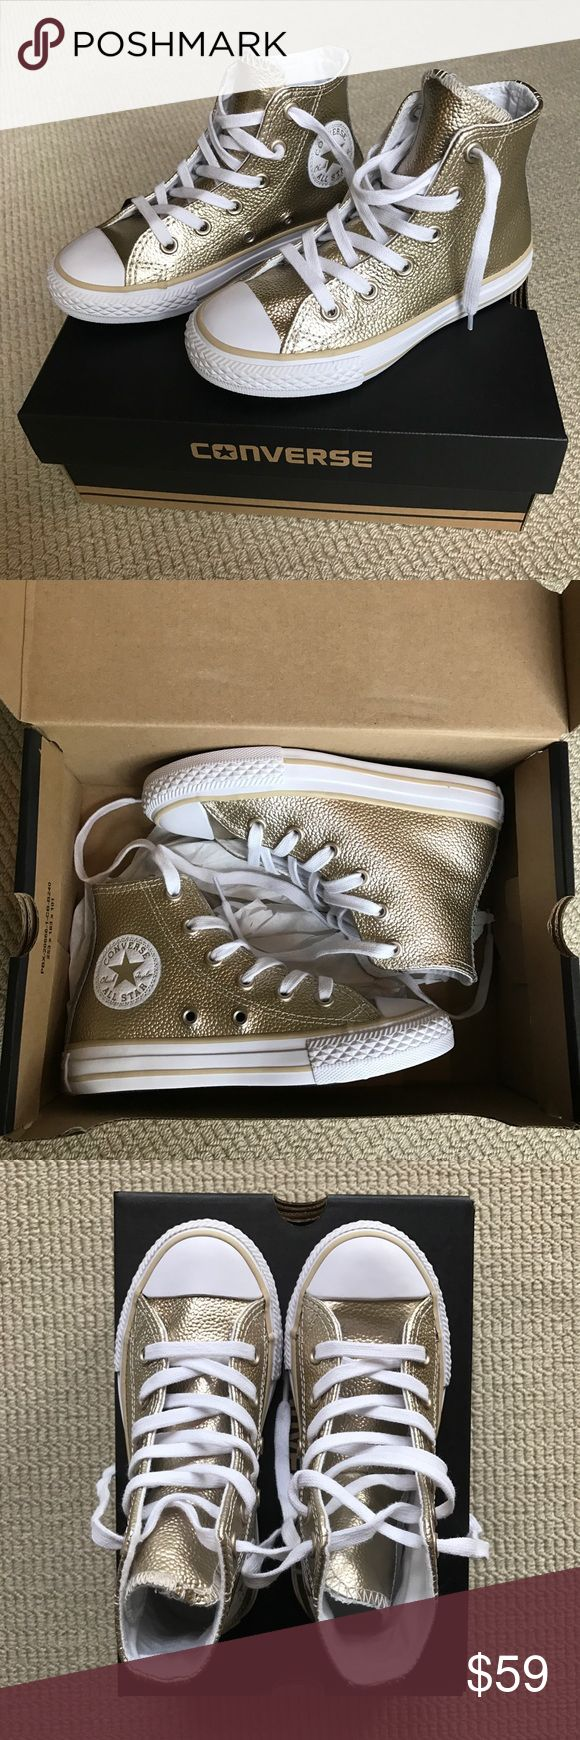 Converse Girls All Star High Tops Stingray Gold 11 SOLD OUT! Girls Converse Chuck Taylor All Star High Tops Stingray Gold Metallic. Kids girls size 11. I think I purchased the last pair from Nordstrom :-) These are so cute! Converse Shoes